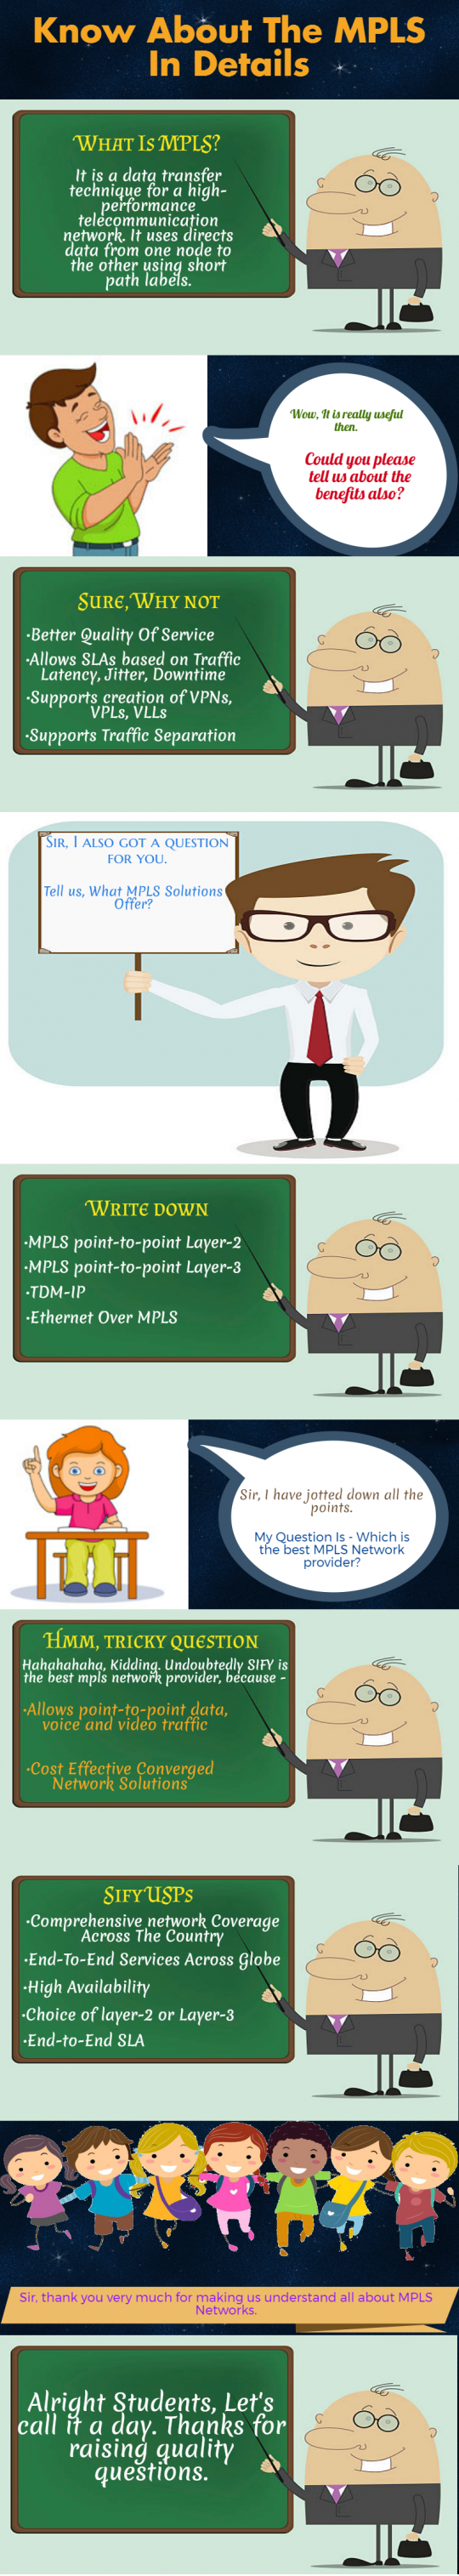 Know About The MPLS In Details